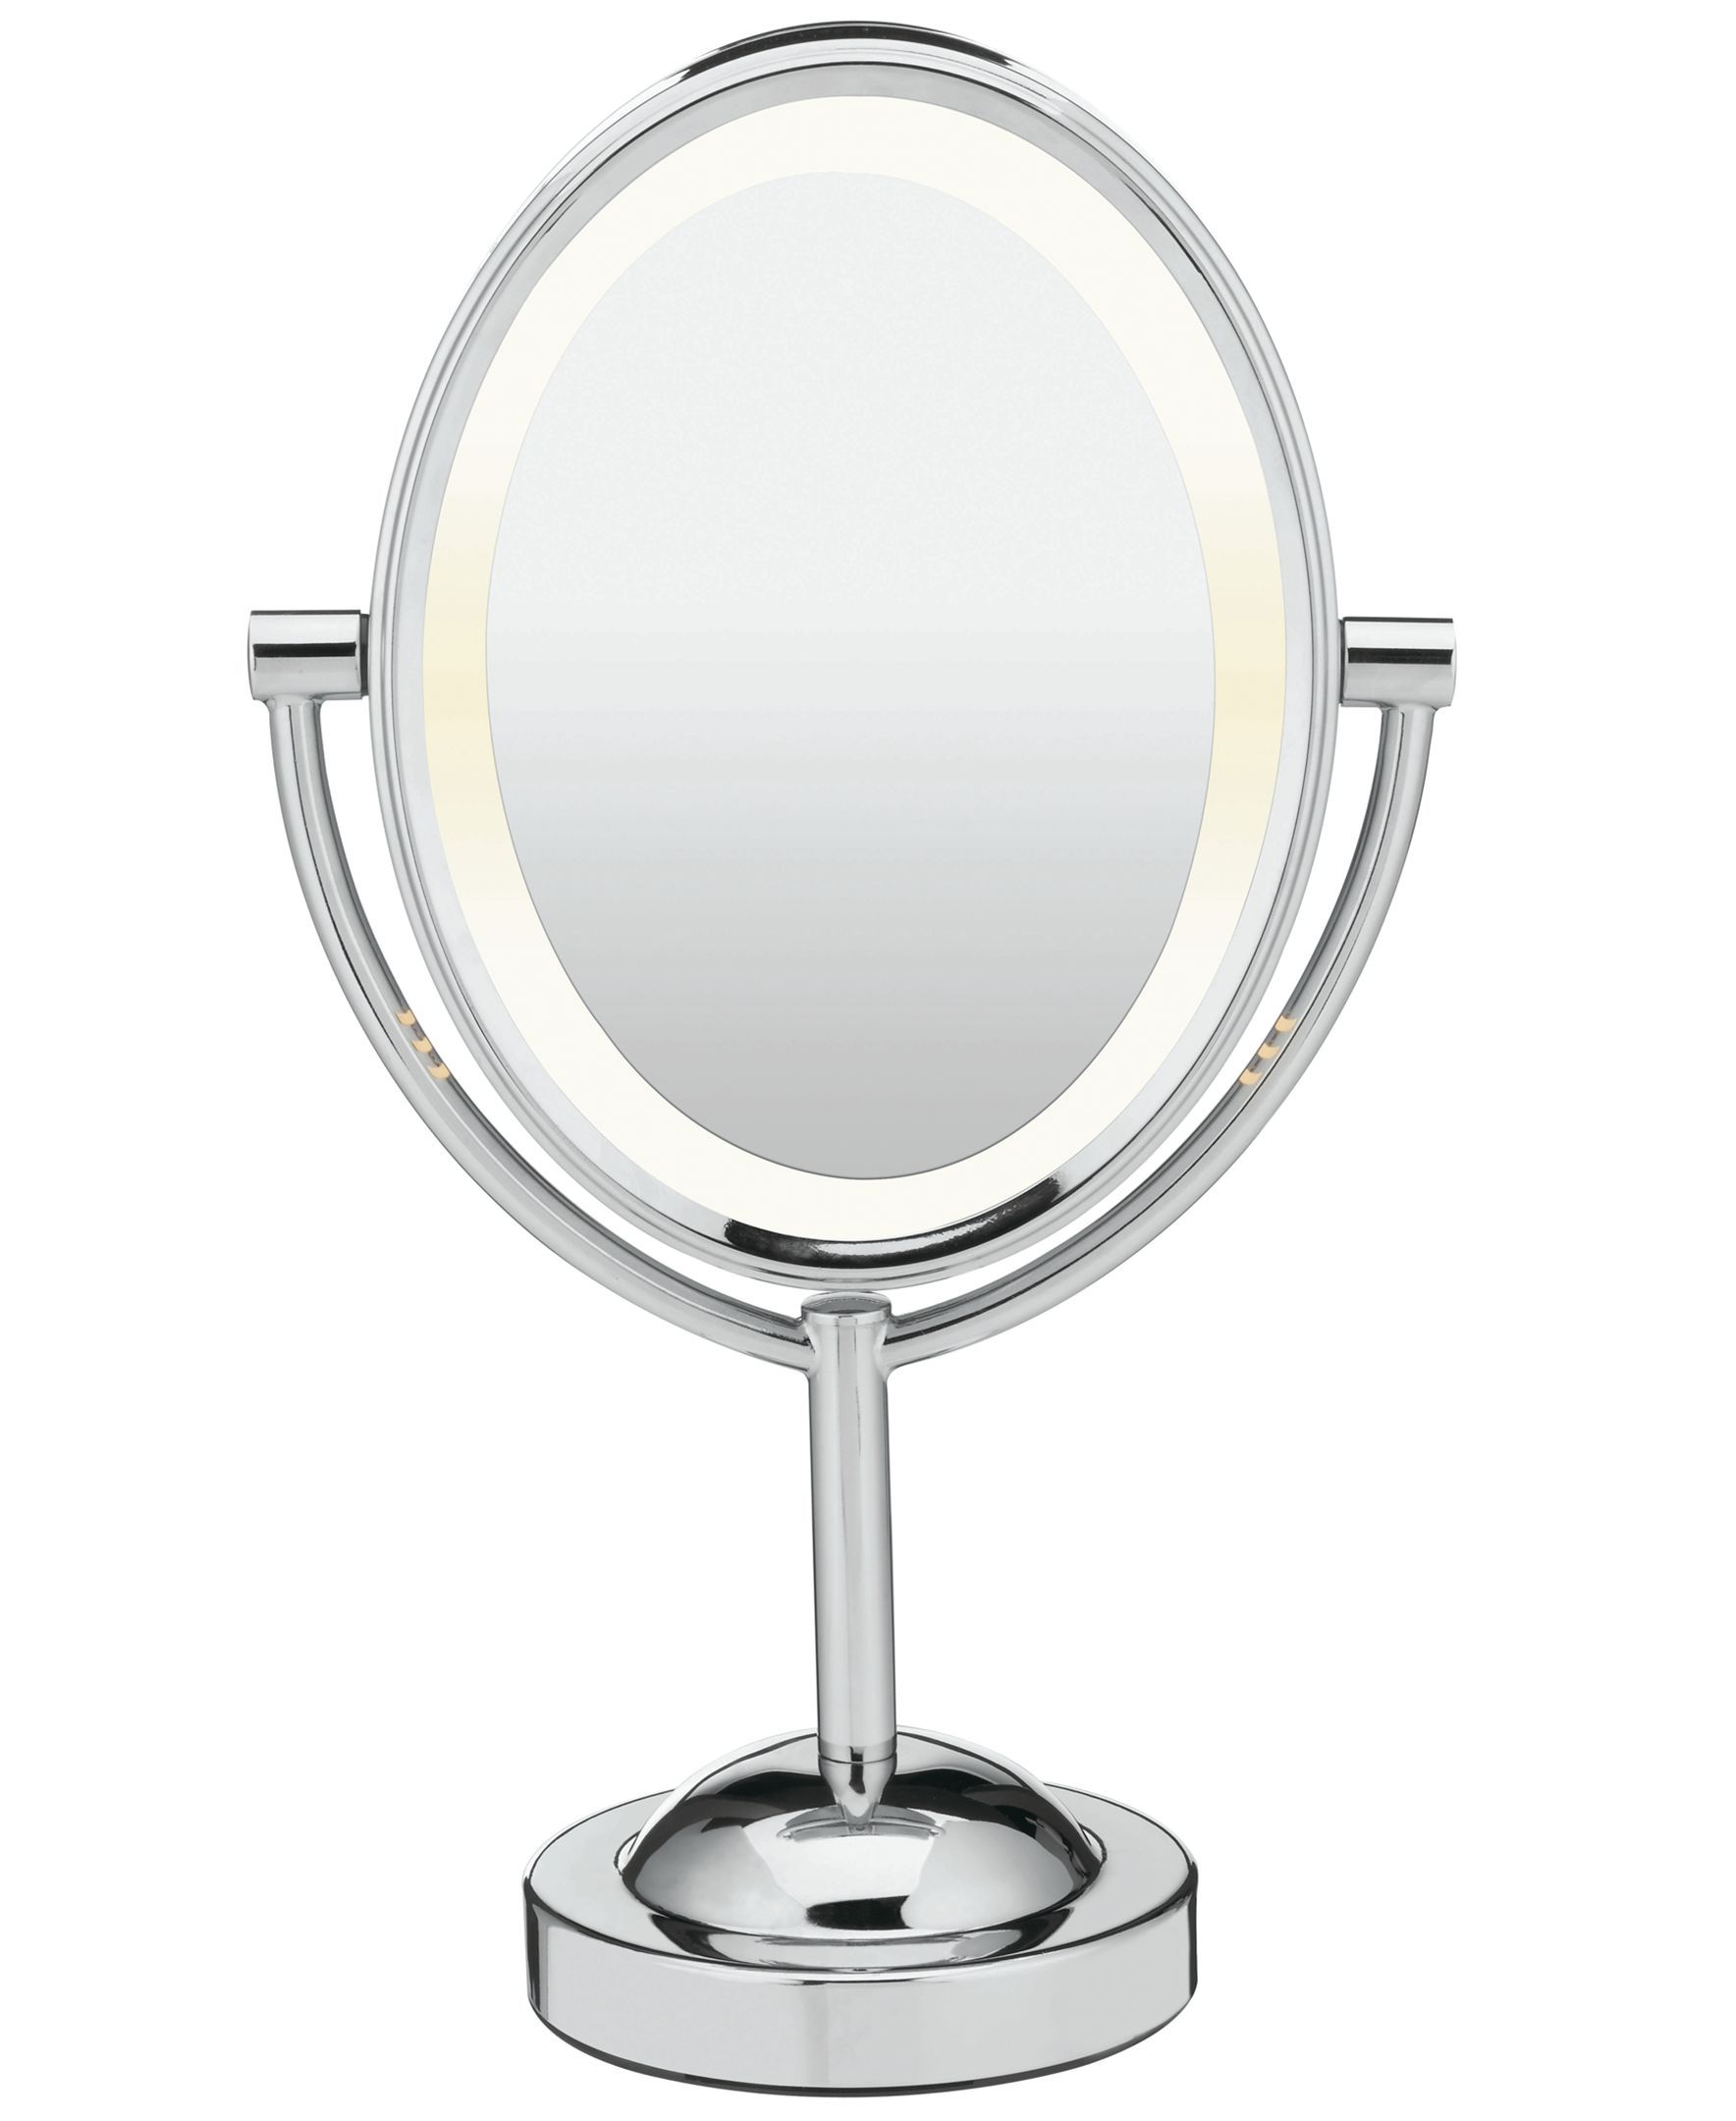 Double Sided Lighted Oval Mirror Makeup Mirror With Lights